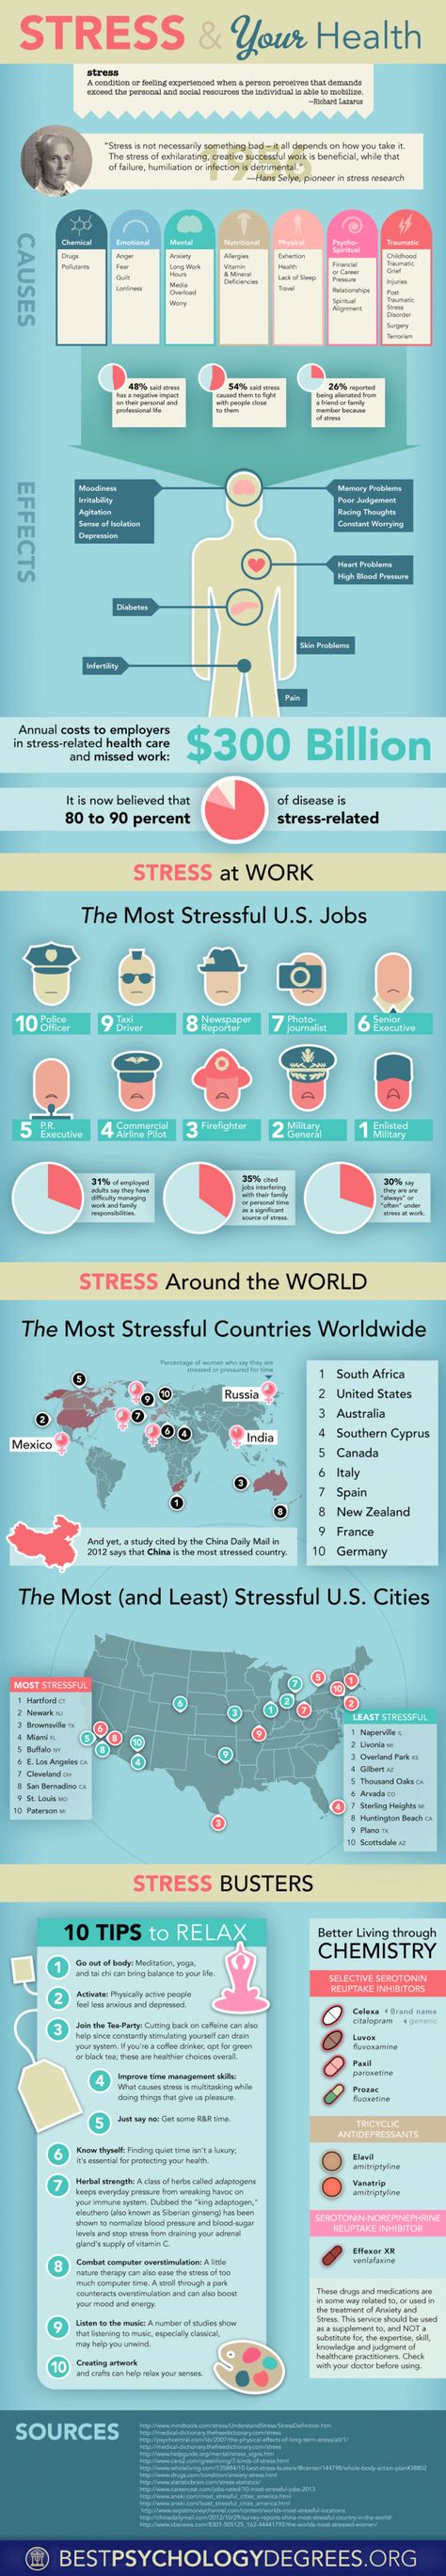 Stress & Your Health Infographic Health infographics, Healthy food infographics, Healthy living infographics